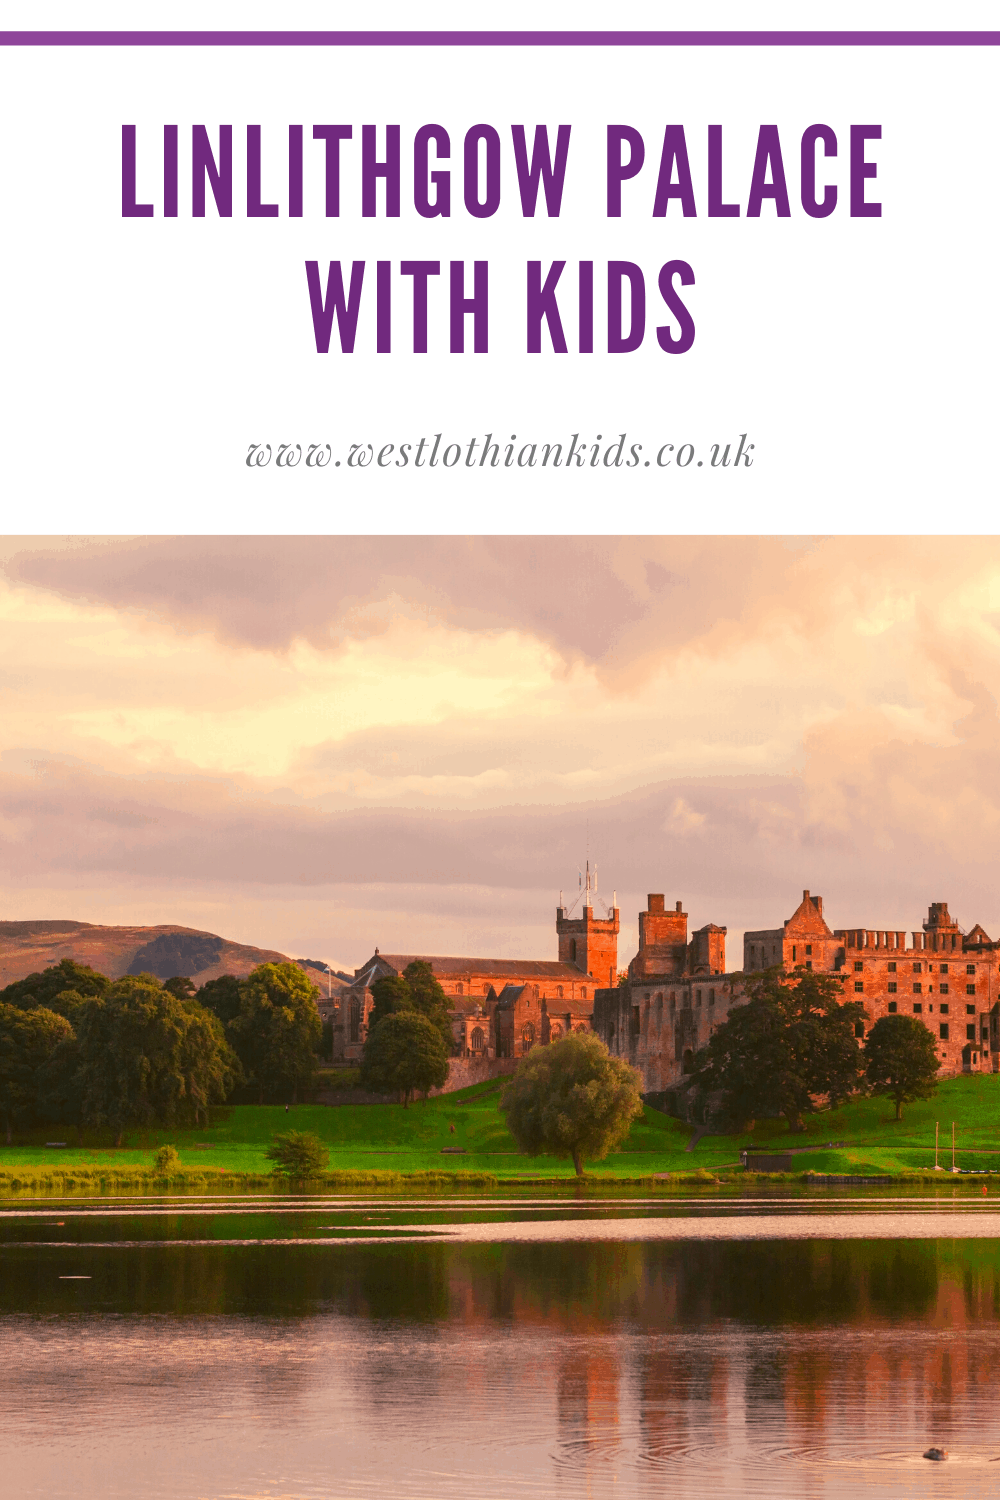 Linlithgow Palace, West Lothian with Kids